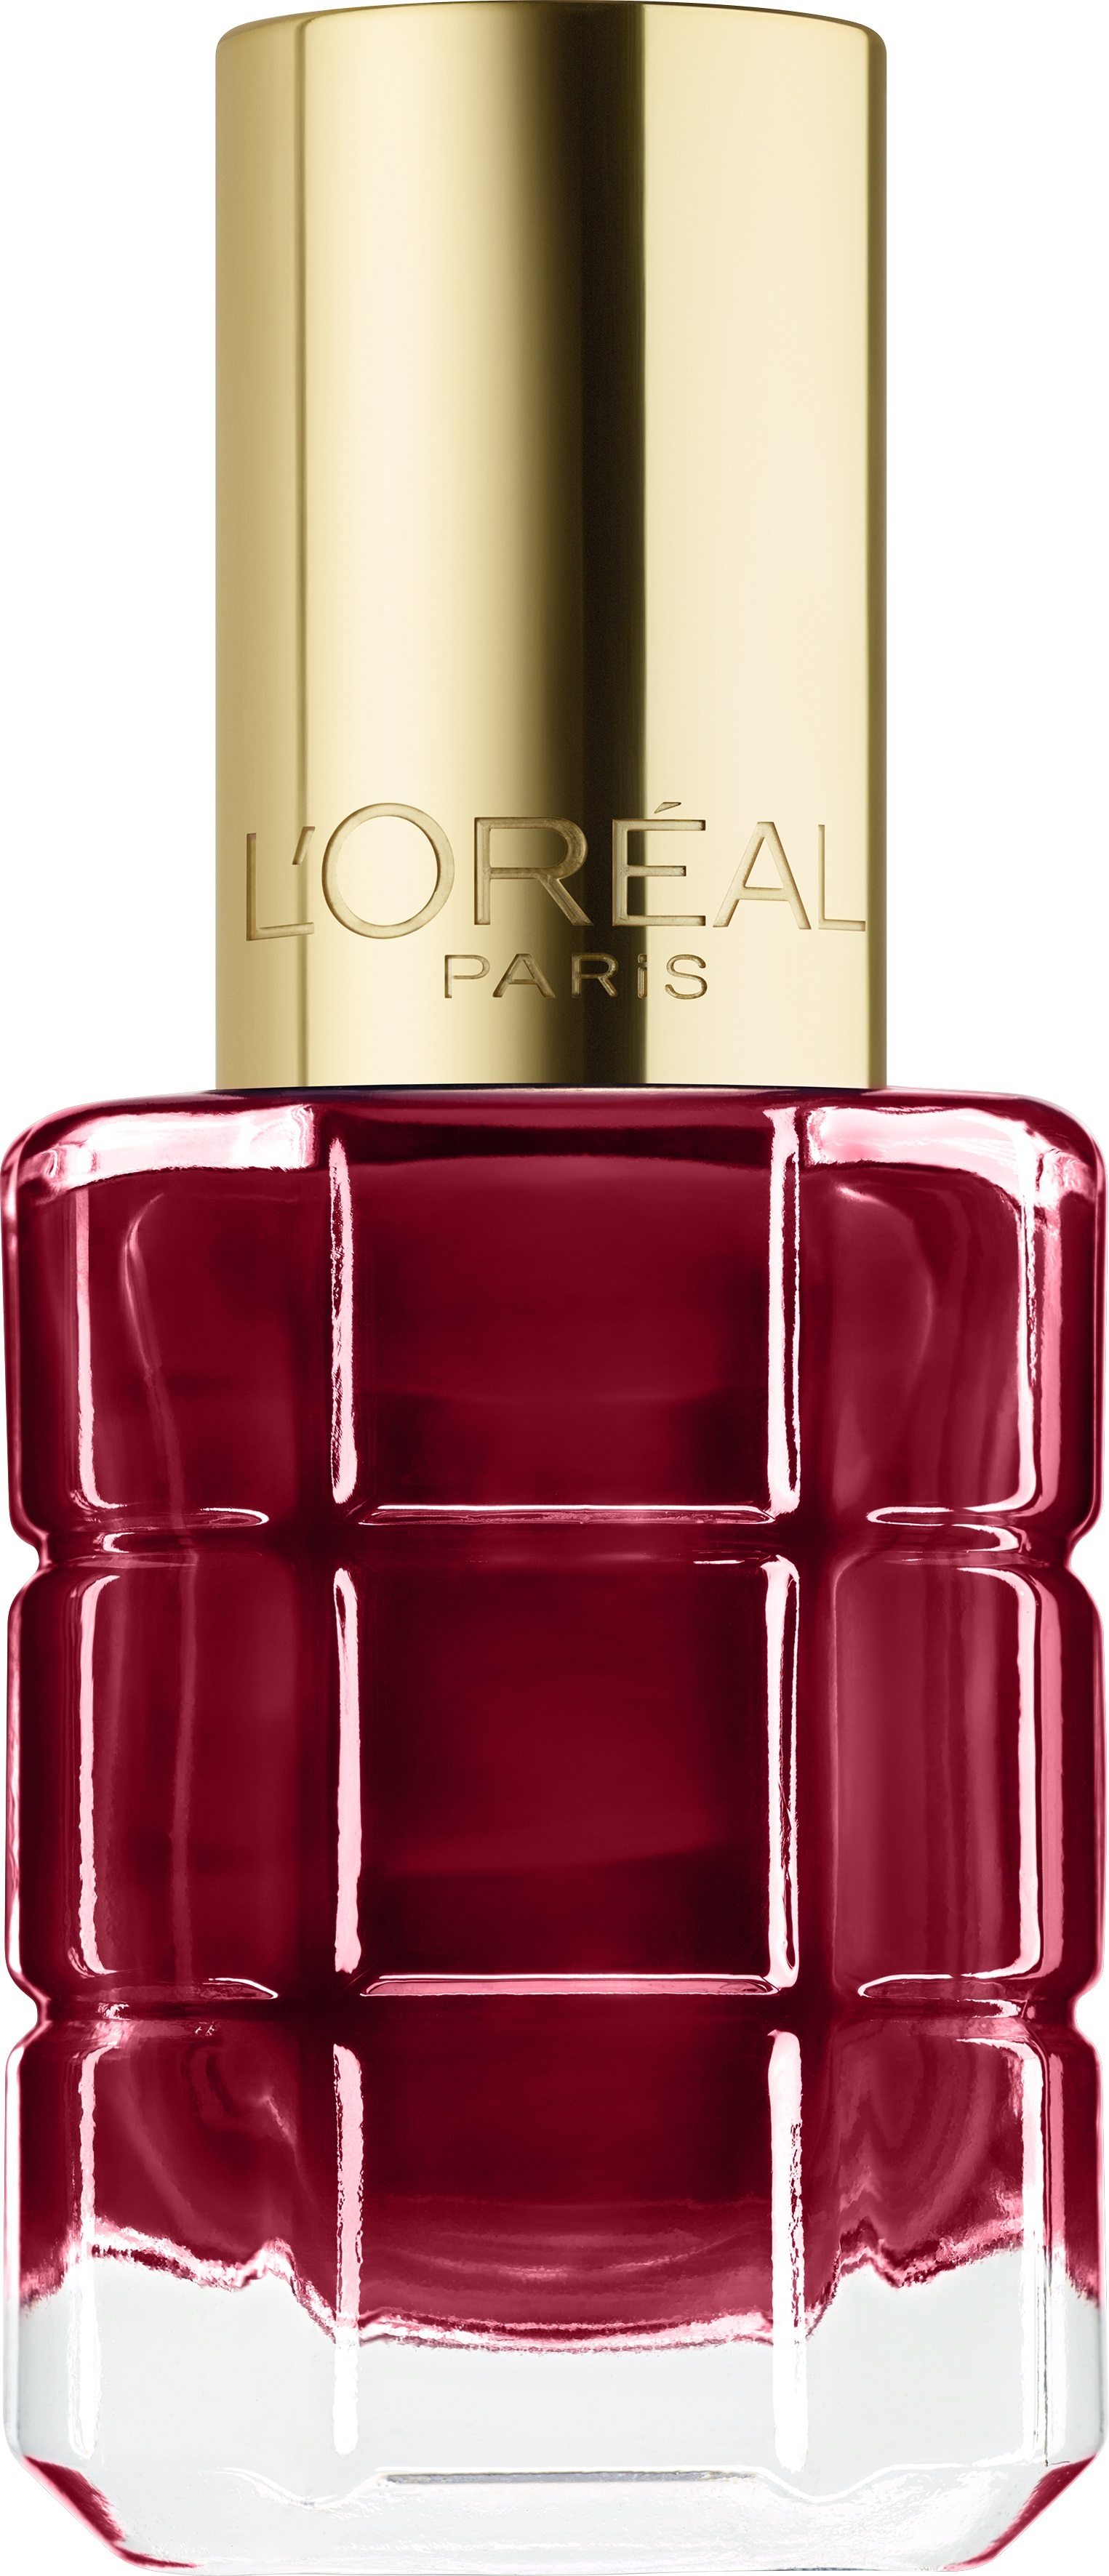 L'Oreal Paris Color Riche A L'Huile Nail Paint  available at Nykaa for Rs.399